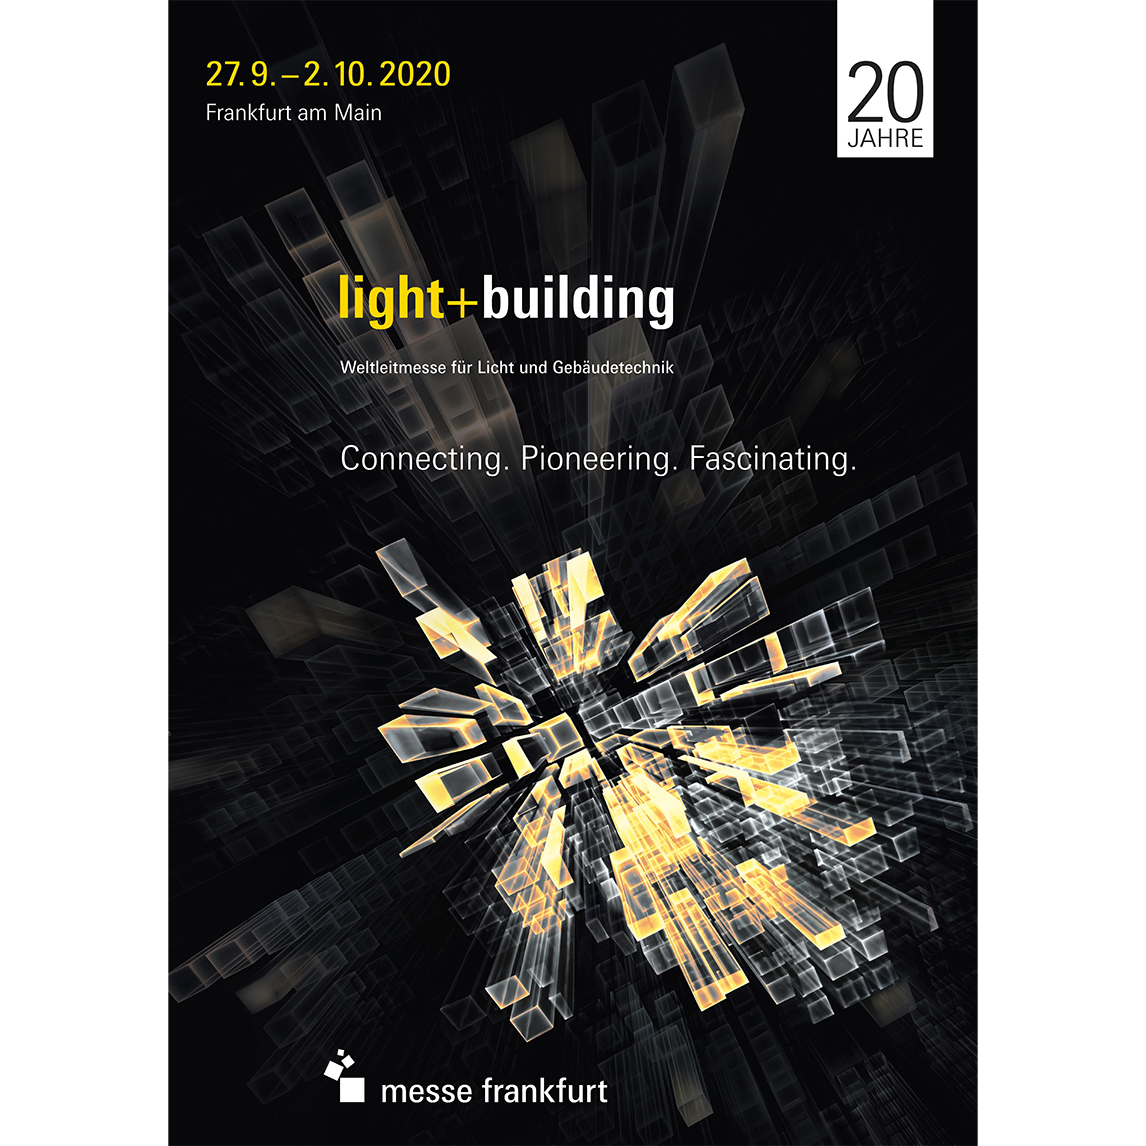 Light + Building 2020 Keyvisual